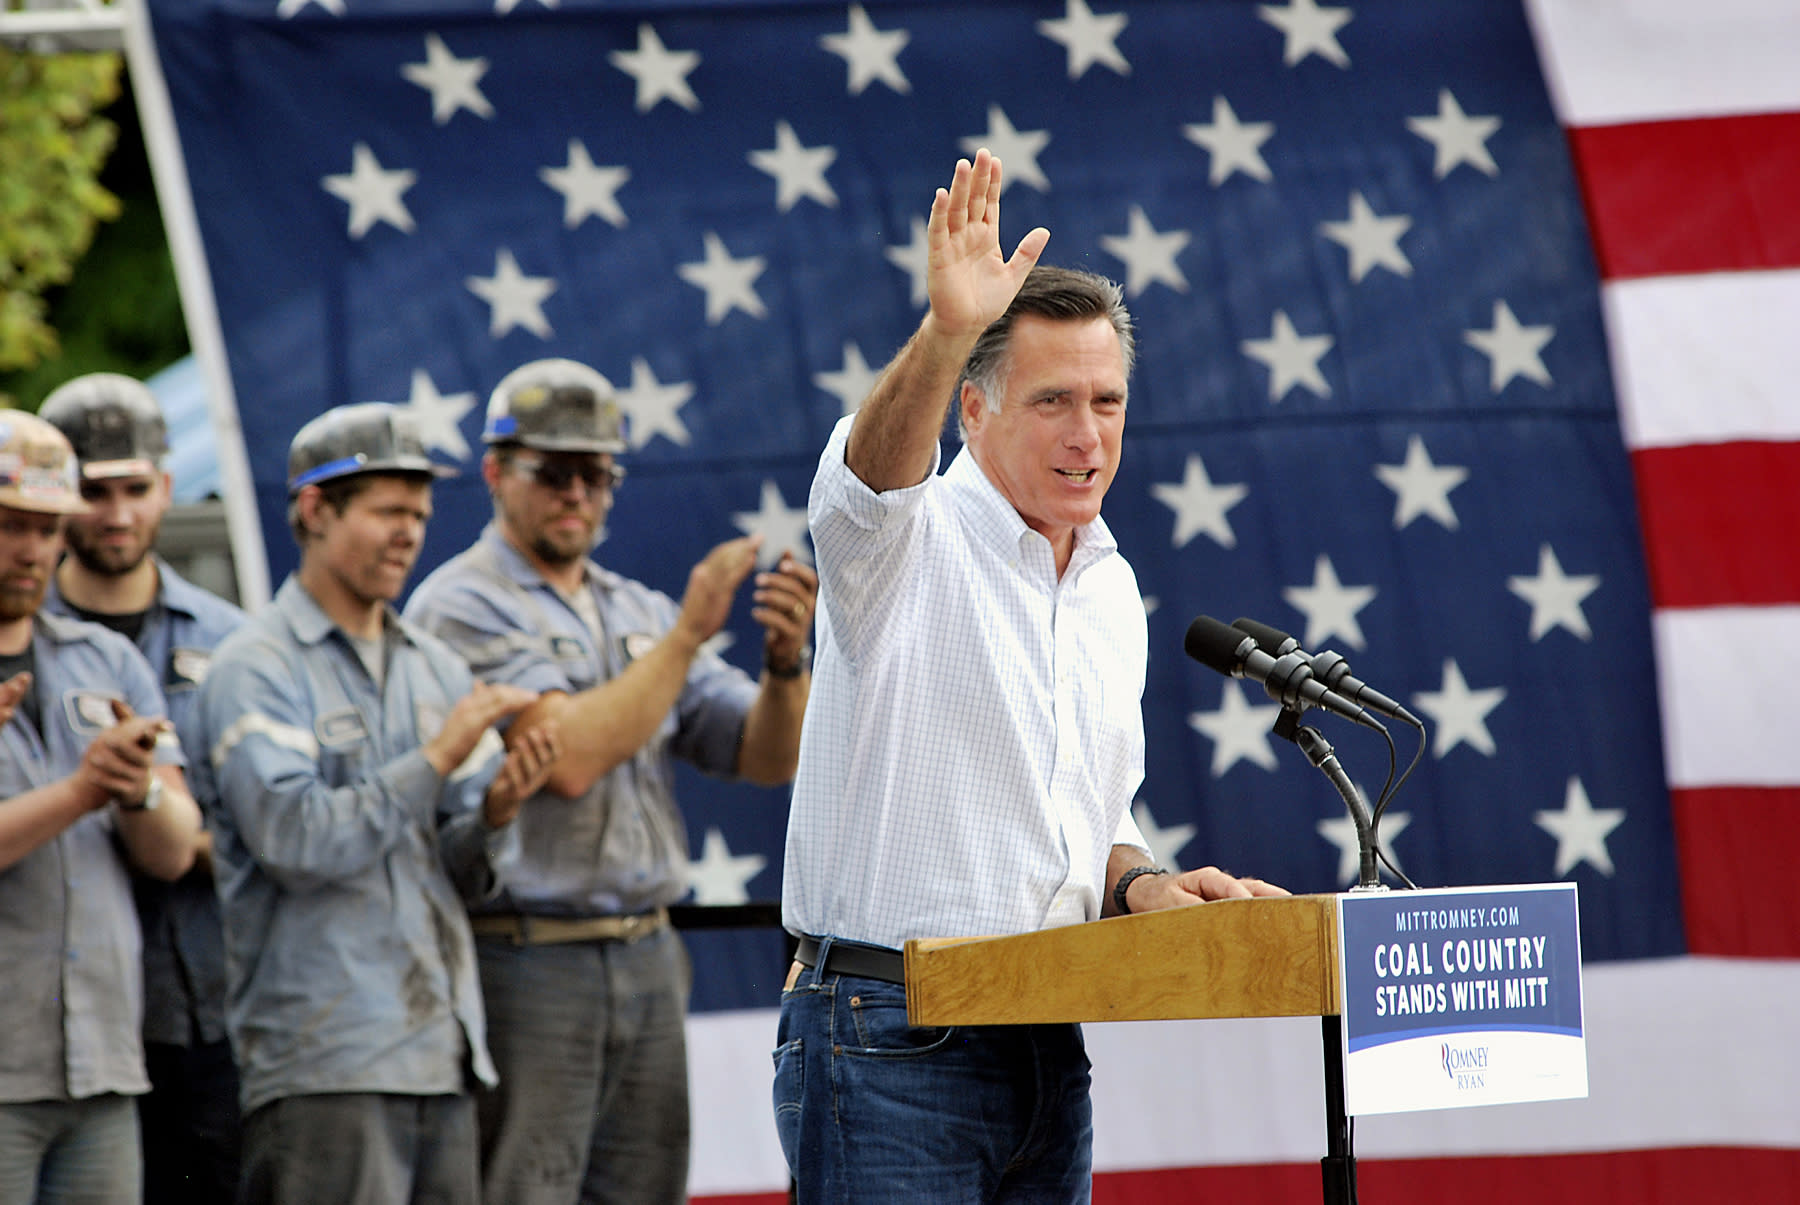 Republican presidential candidate, former Massachusetts Gov. Mitt Romney waves to the crowd during a rally Tuesday, Aug. 14, 2012, at the Century Mine Main Office Building near Beallsville, Ohio. (AP Photo/The Intelligencer, Scott Mccloskey)